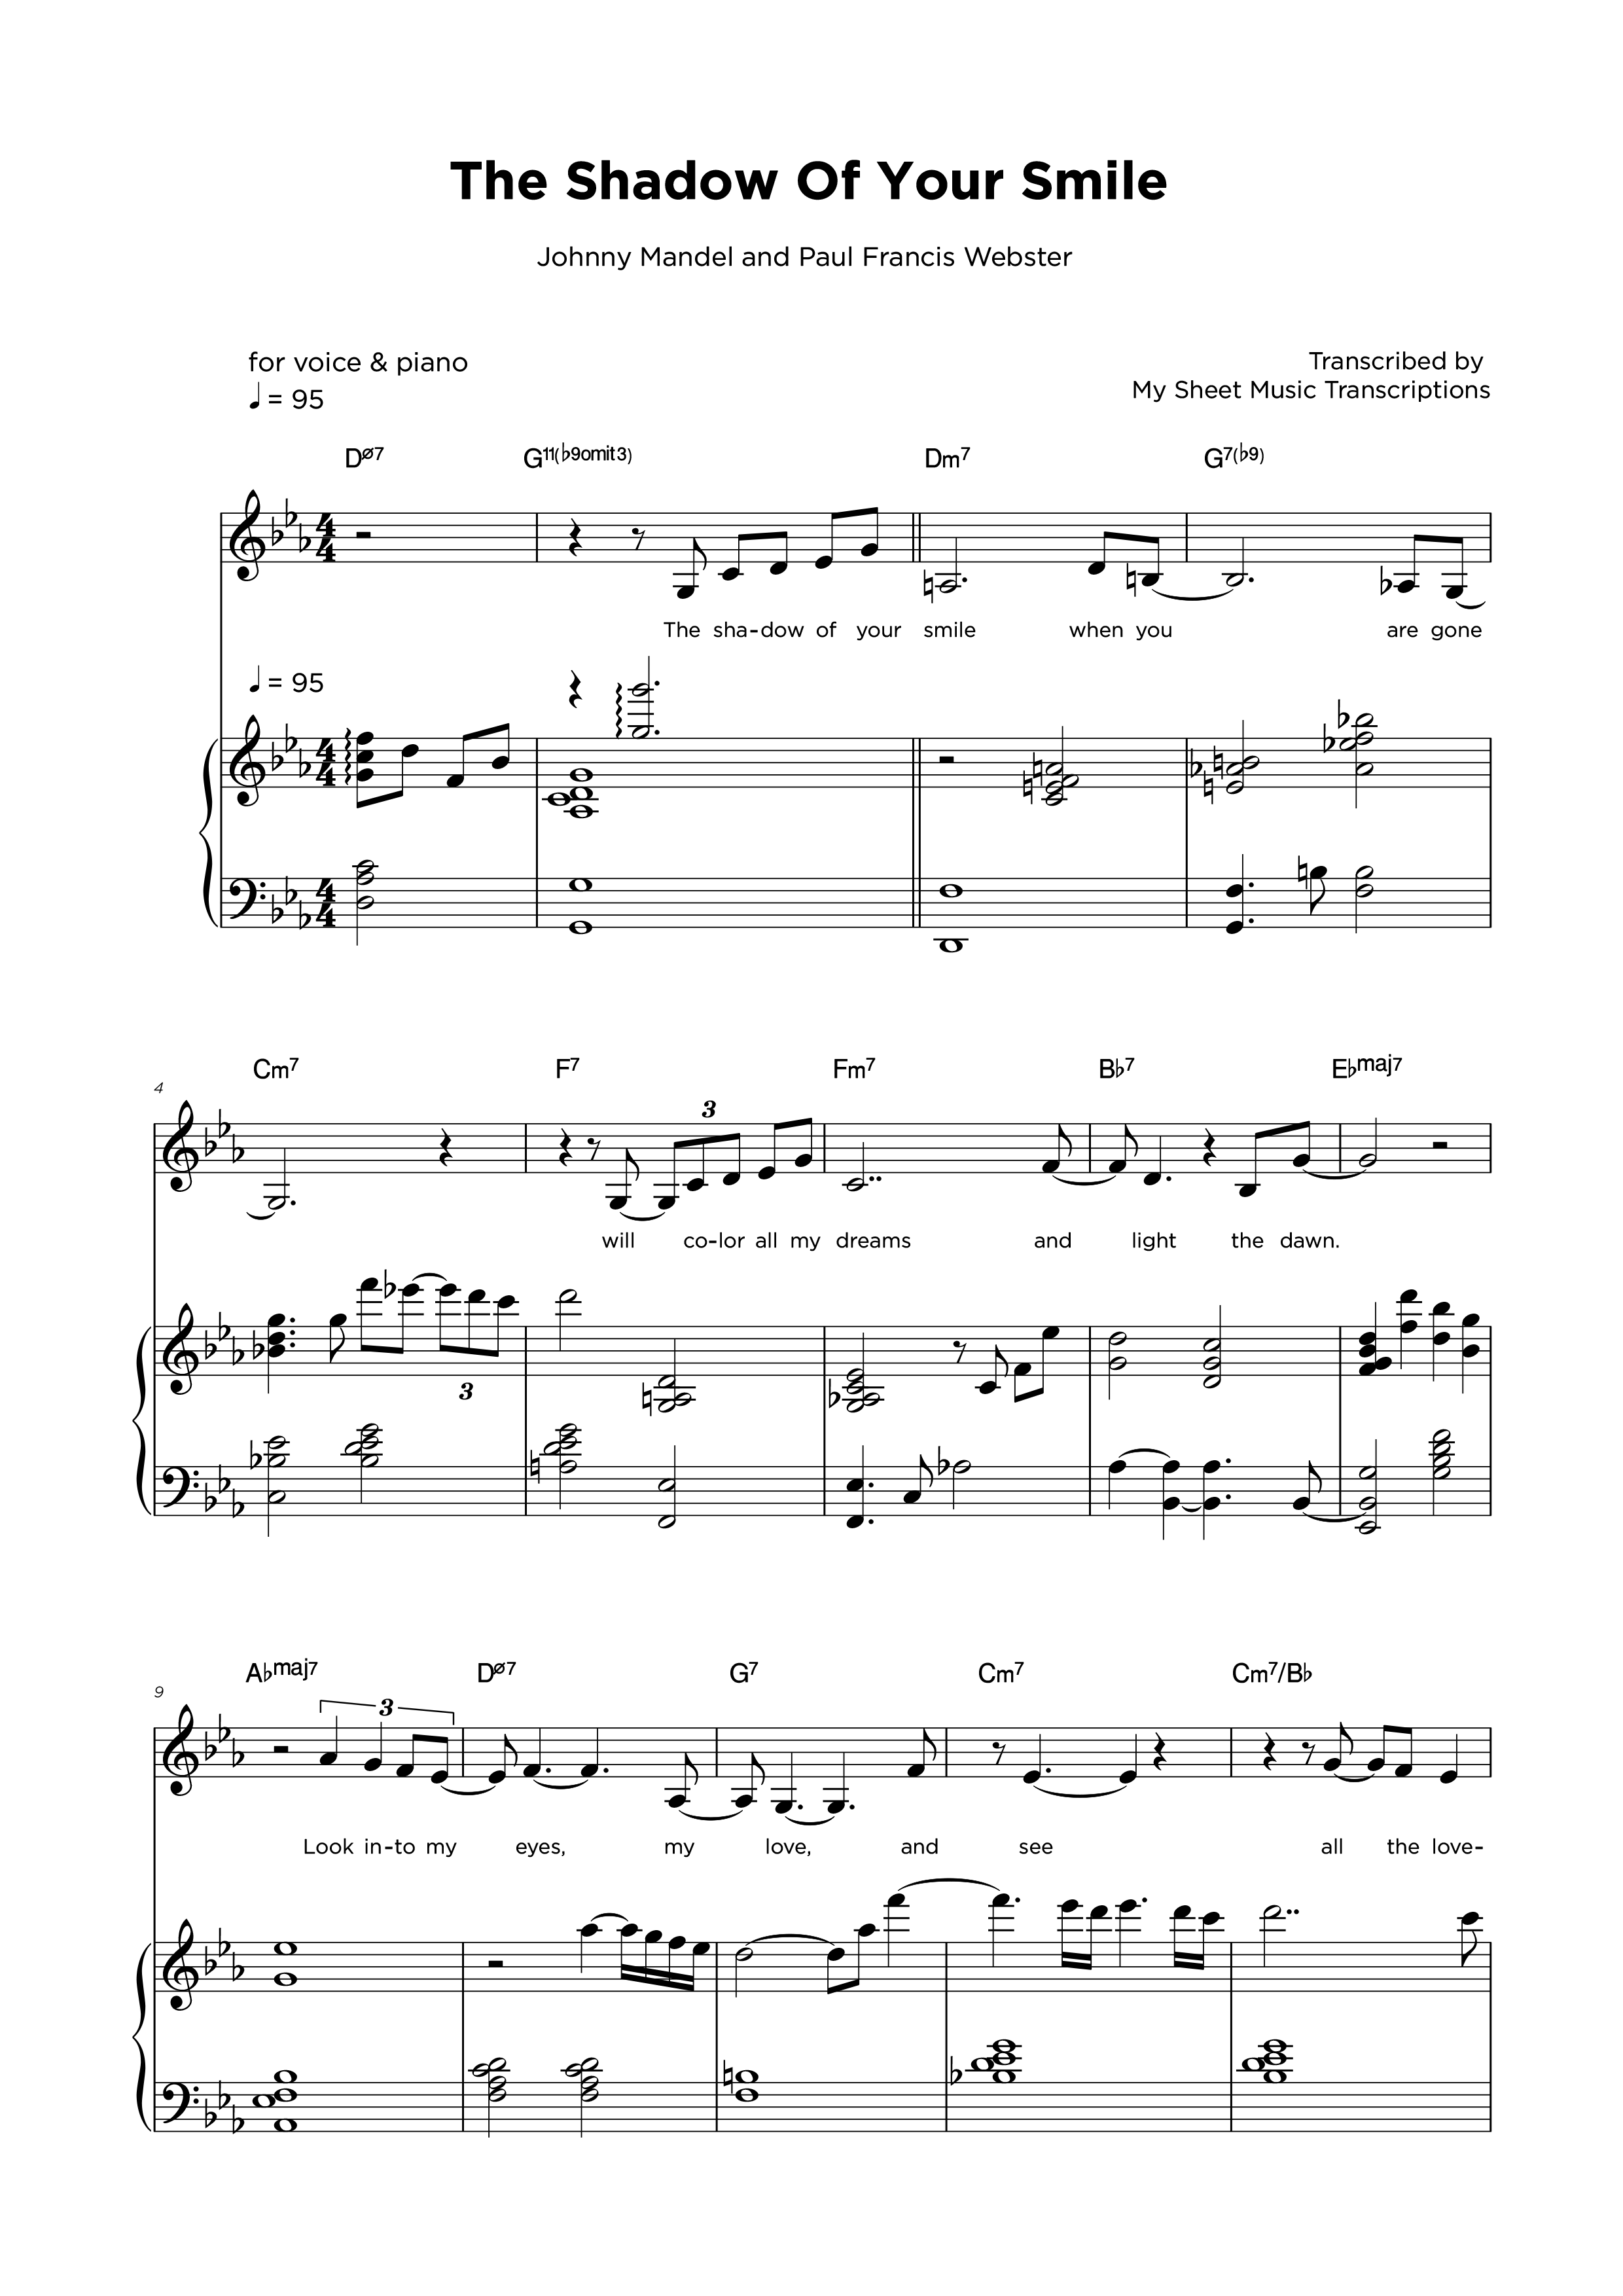 The Shadow of your smile - Partitura para piano y vocal